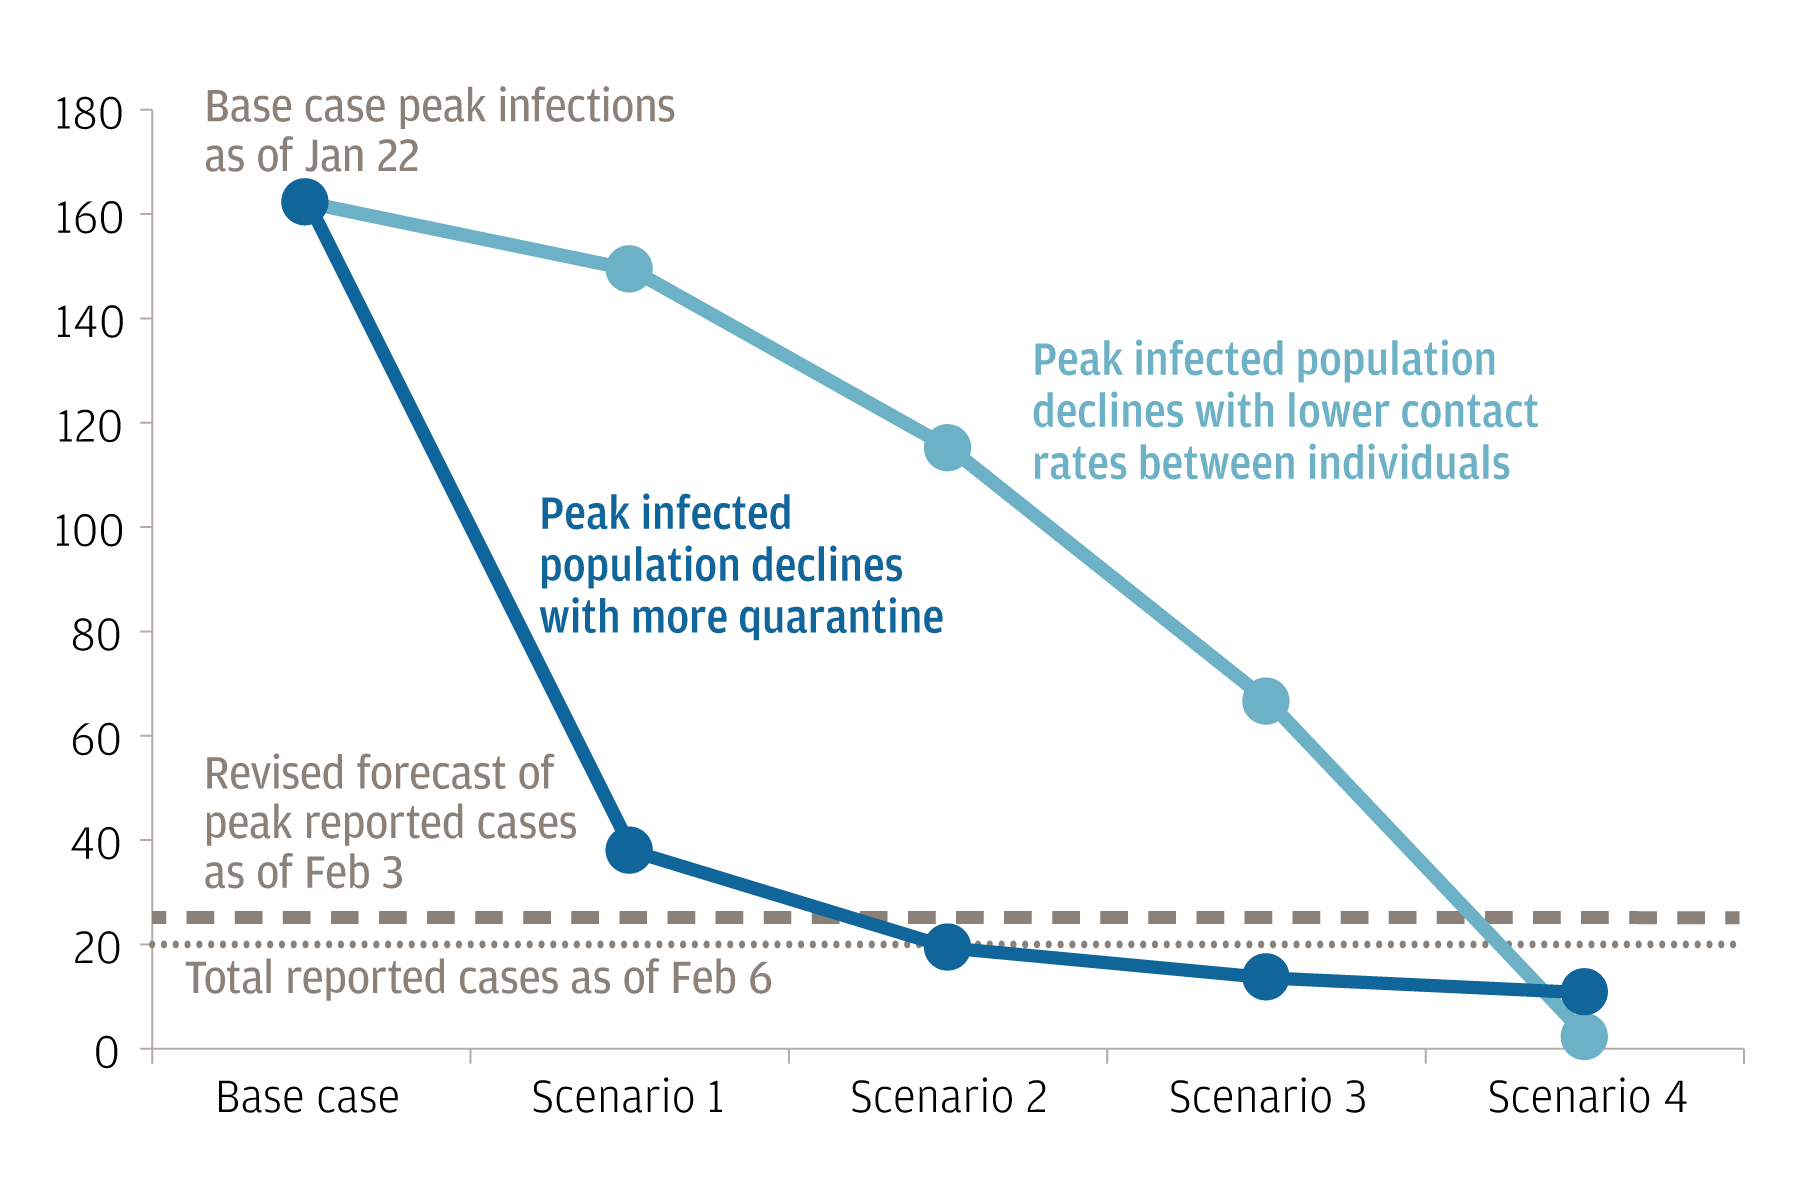 Line chart shows initial and revised infection rates of the Coronavirus in Wuhan, as of January 2020. The chart highlights that the peak infected population has declined as contact rates between individuals have lowered and quarantine has increased.